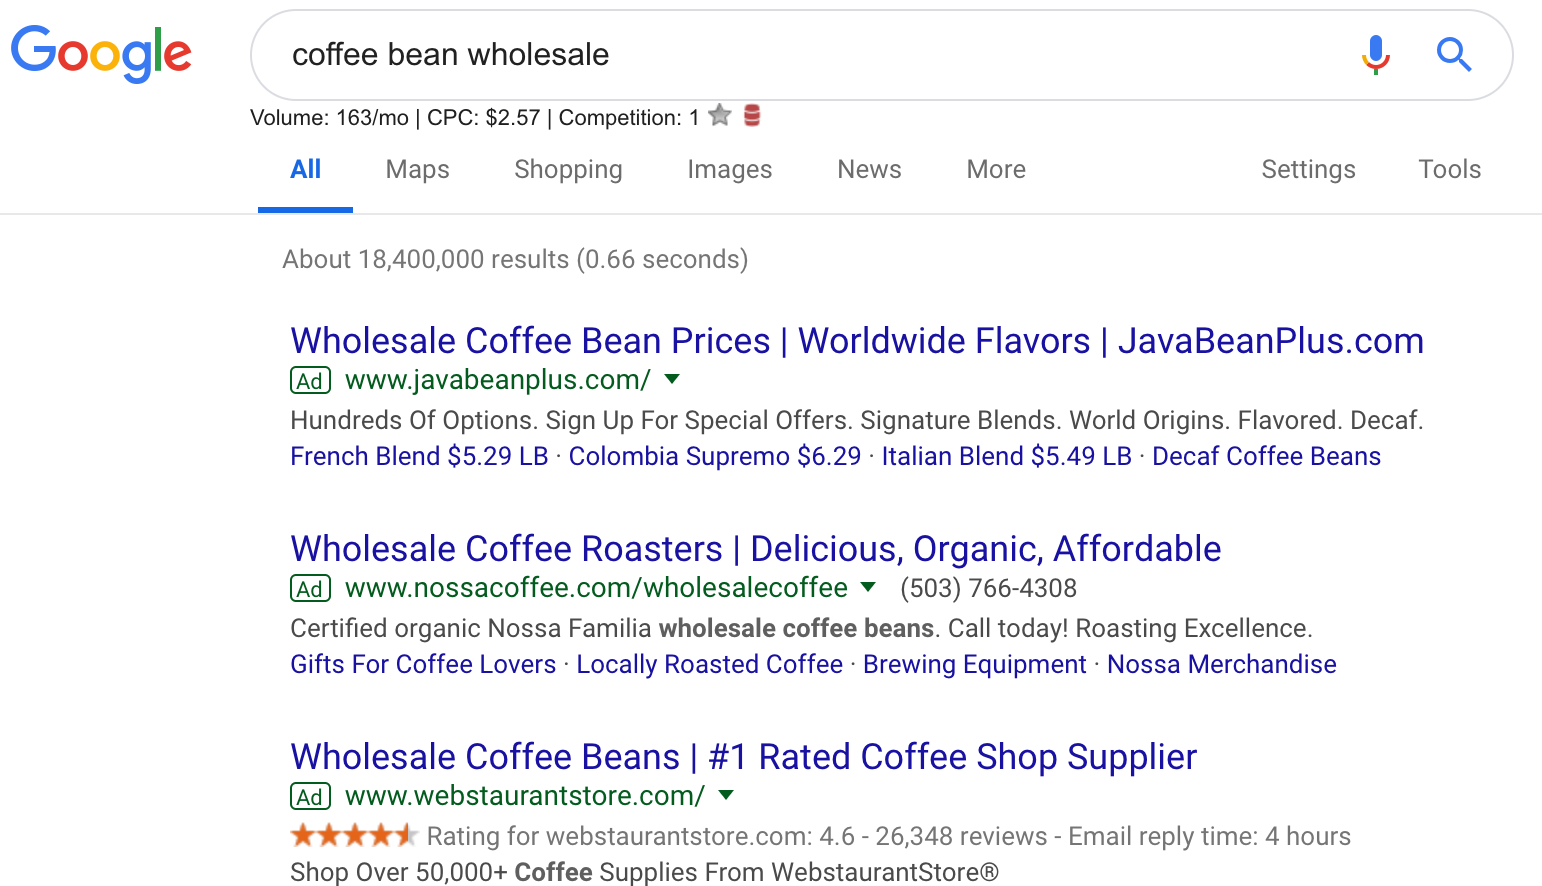 COFFEE BEAN WHOLESALE SEARCH RESULTS